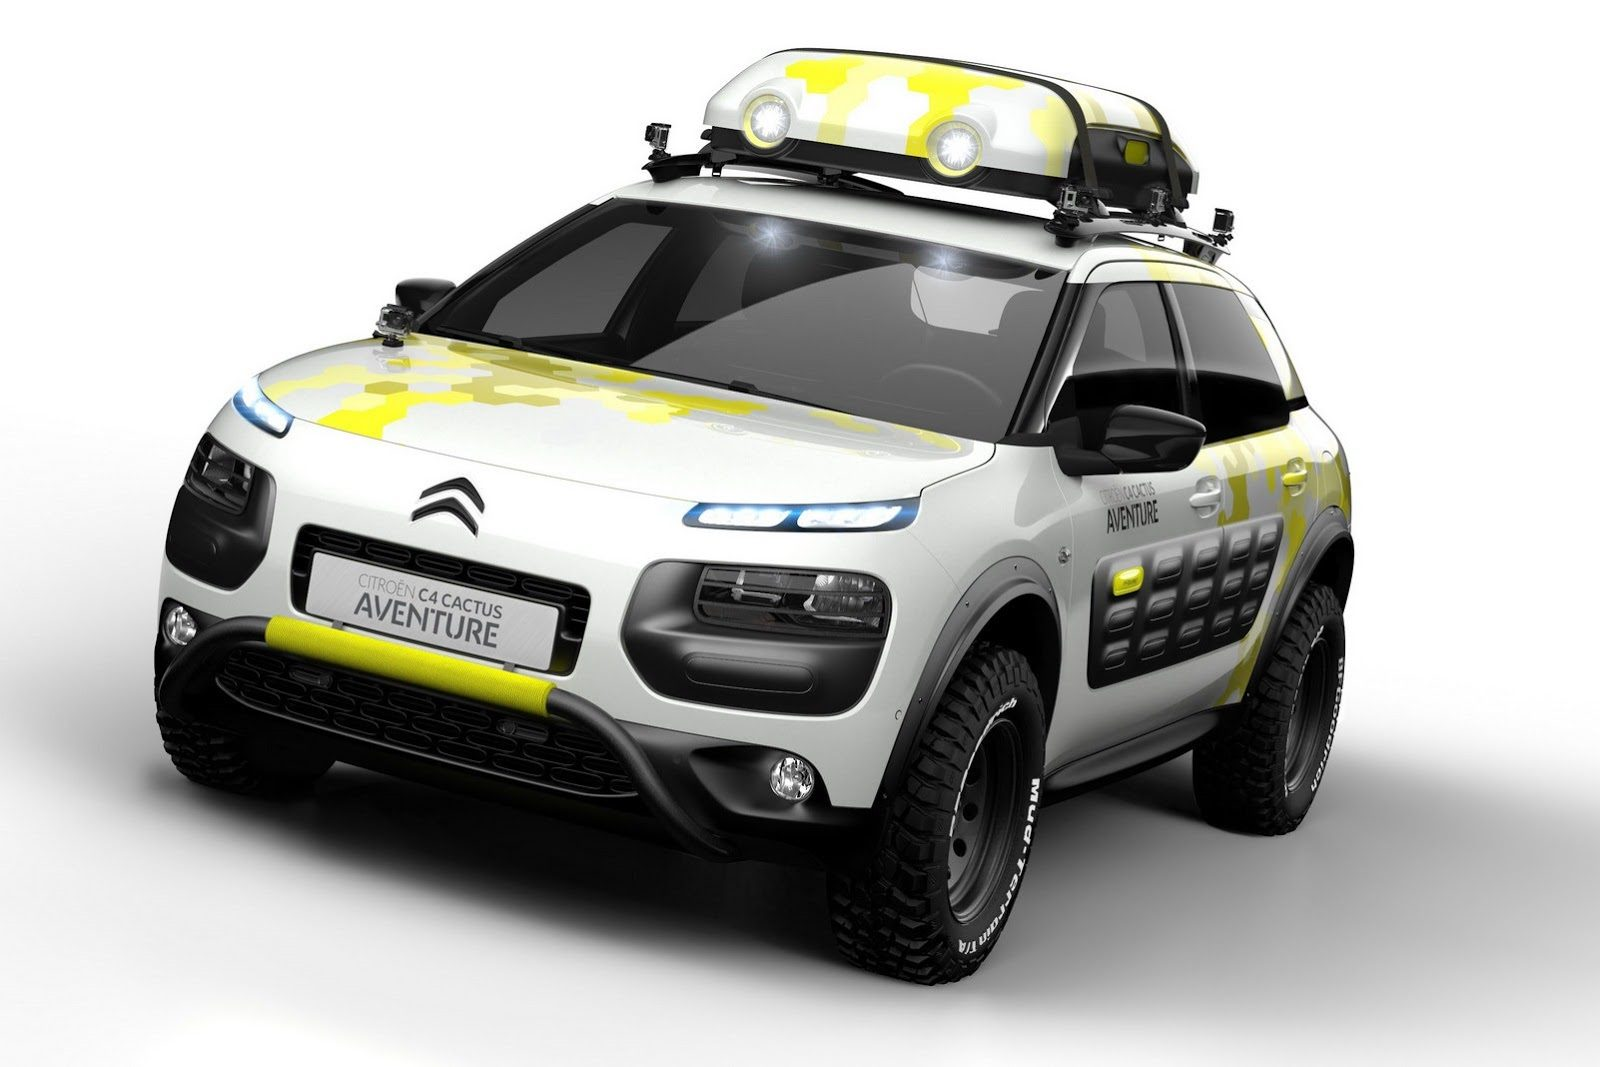 foto citroen c4 cactus aventure concept citroen c4 cactus aventure 001. Black Bedroom Furniture Sets. Home Design Ideas